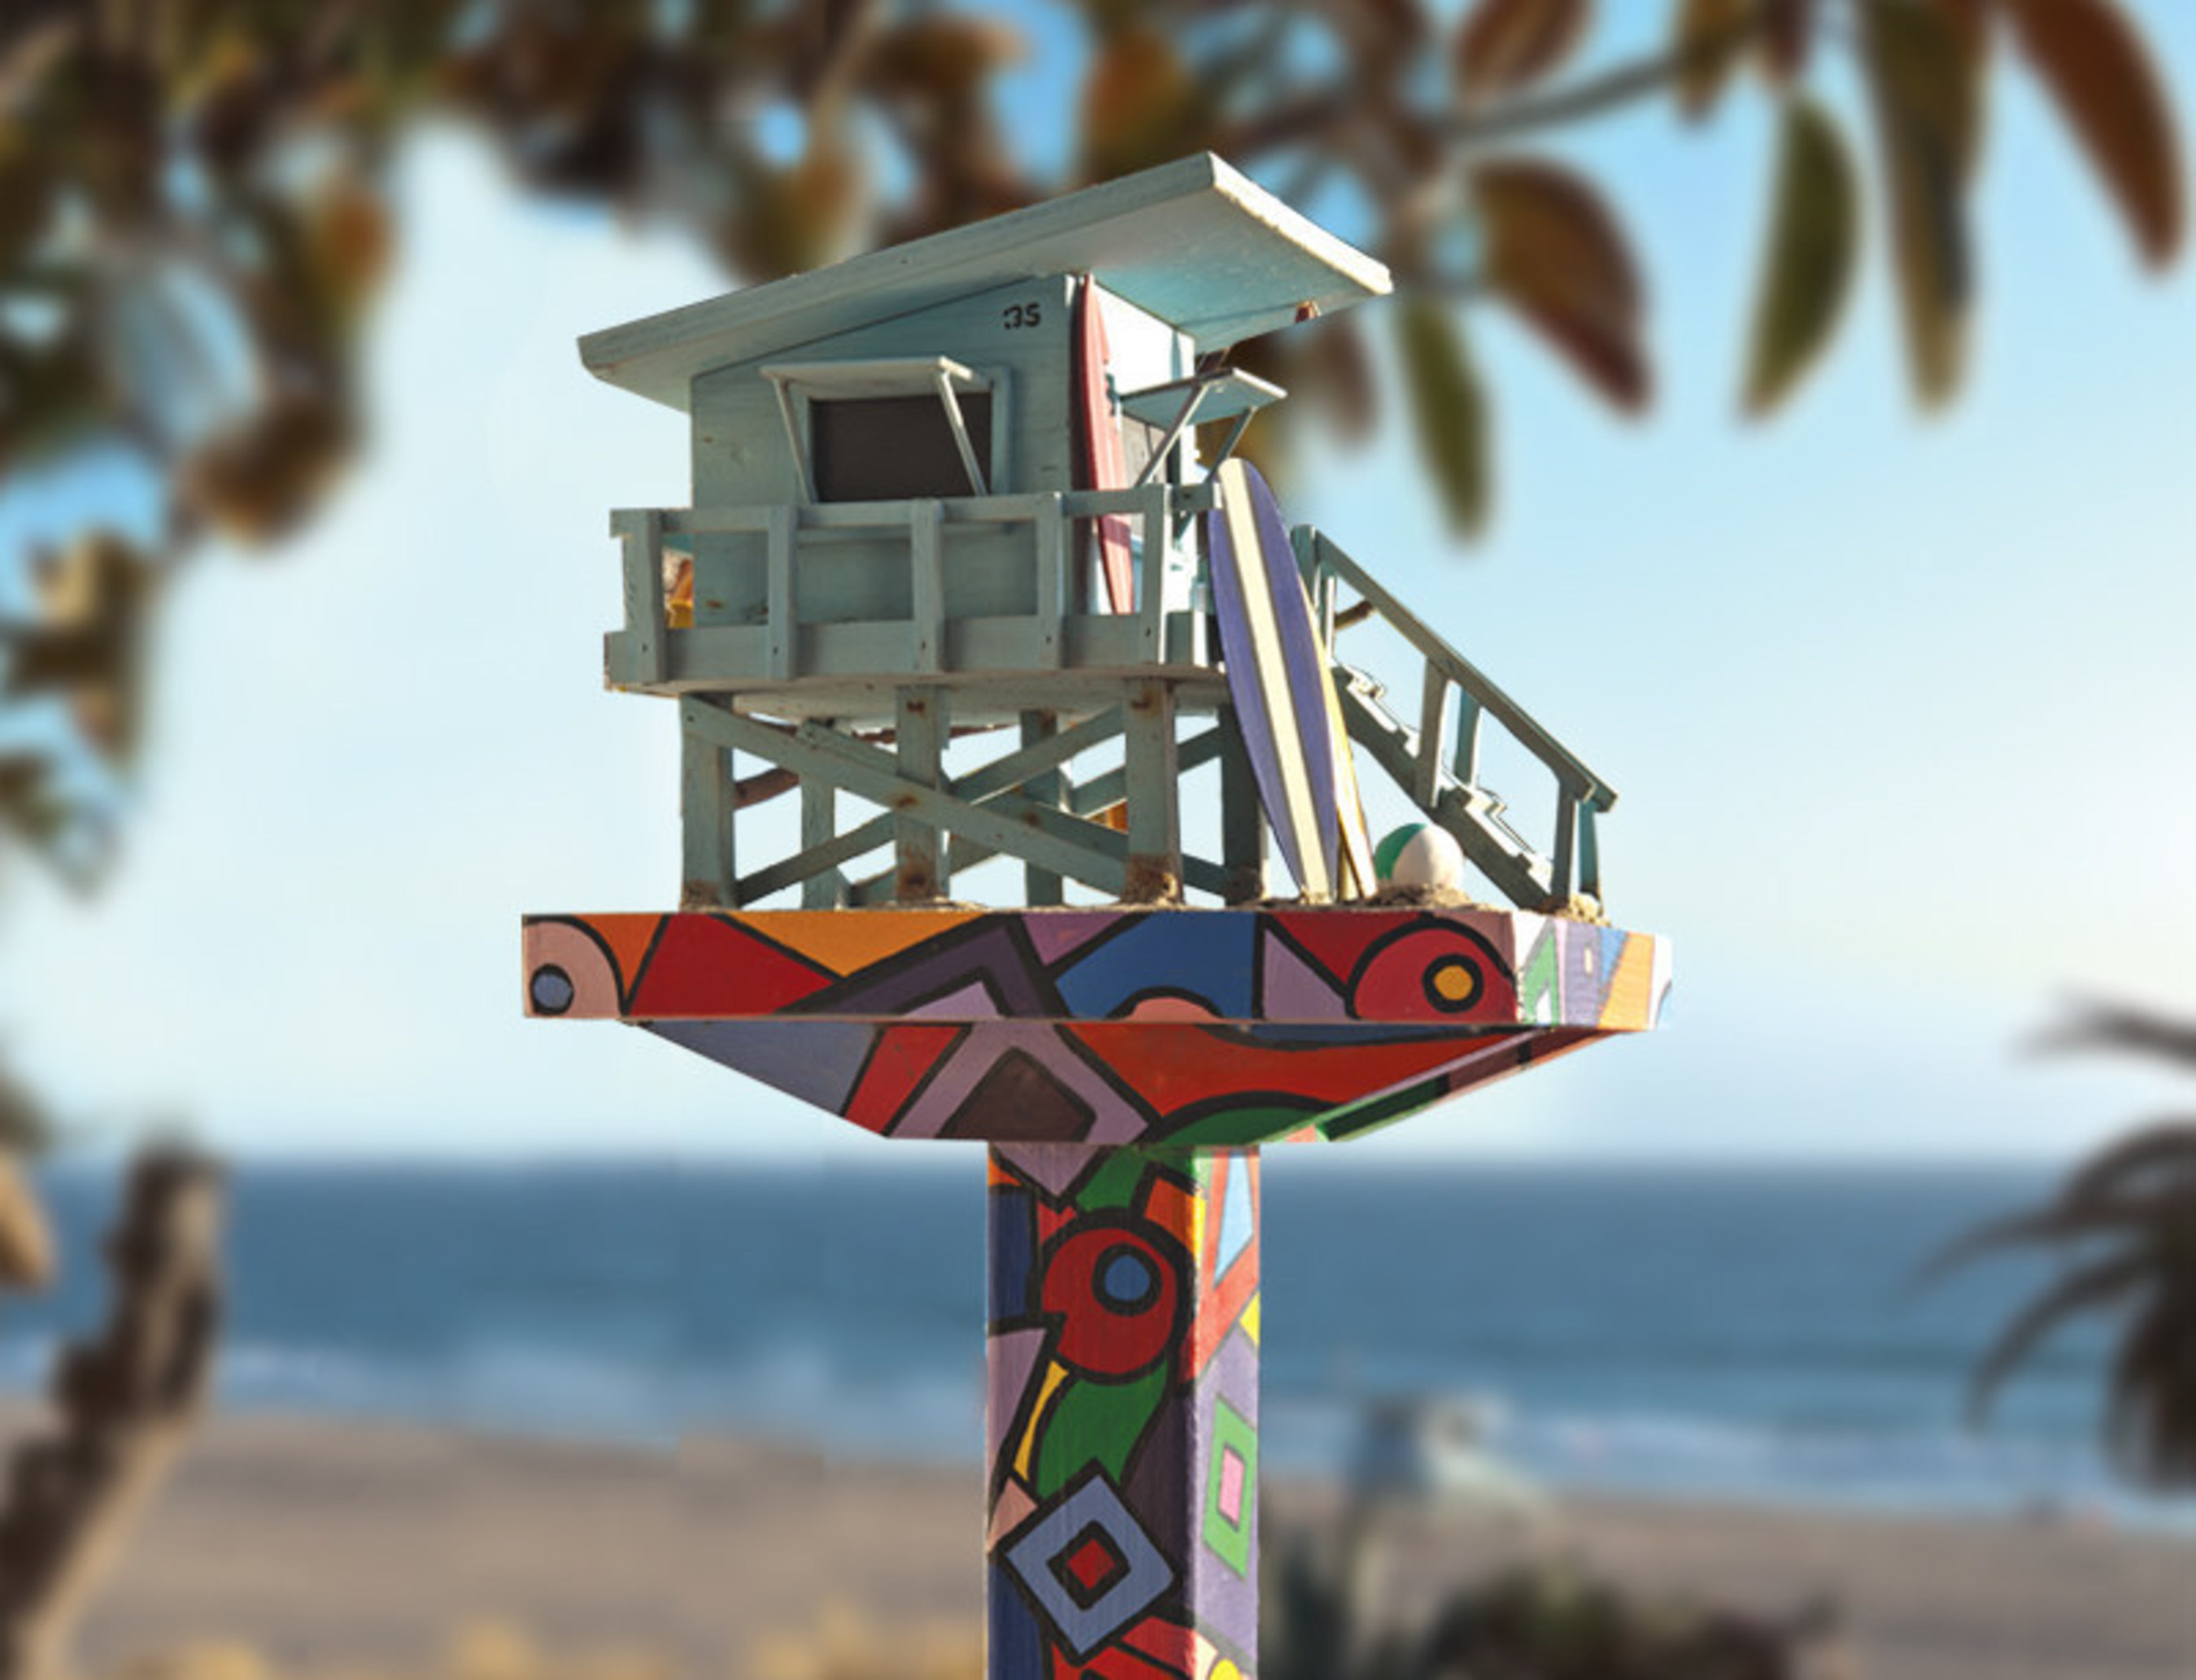 You can give a birdhouse more personality by painting it in bright colors.